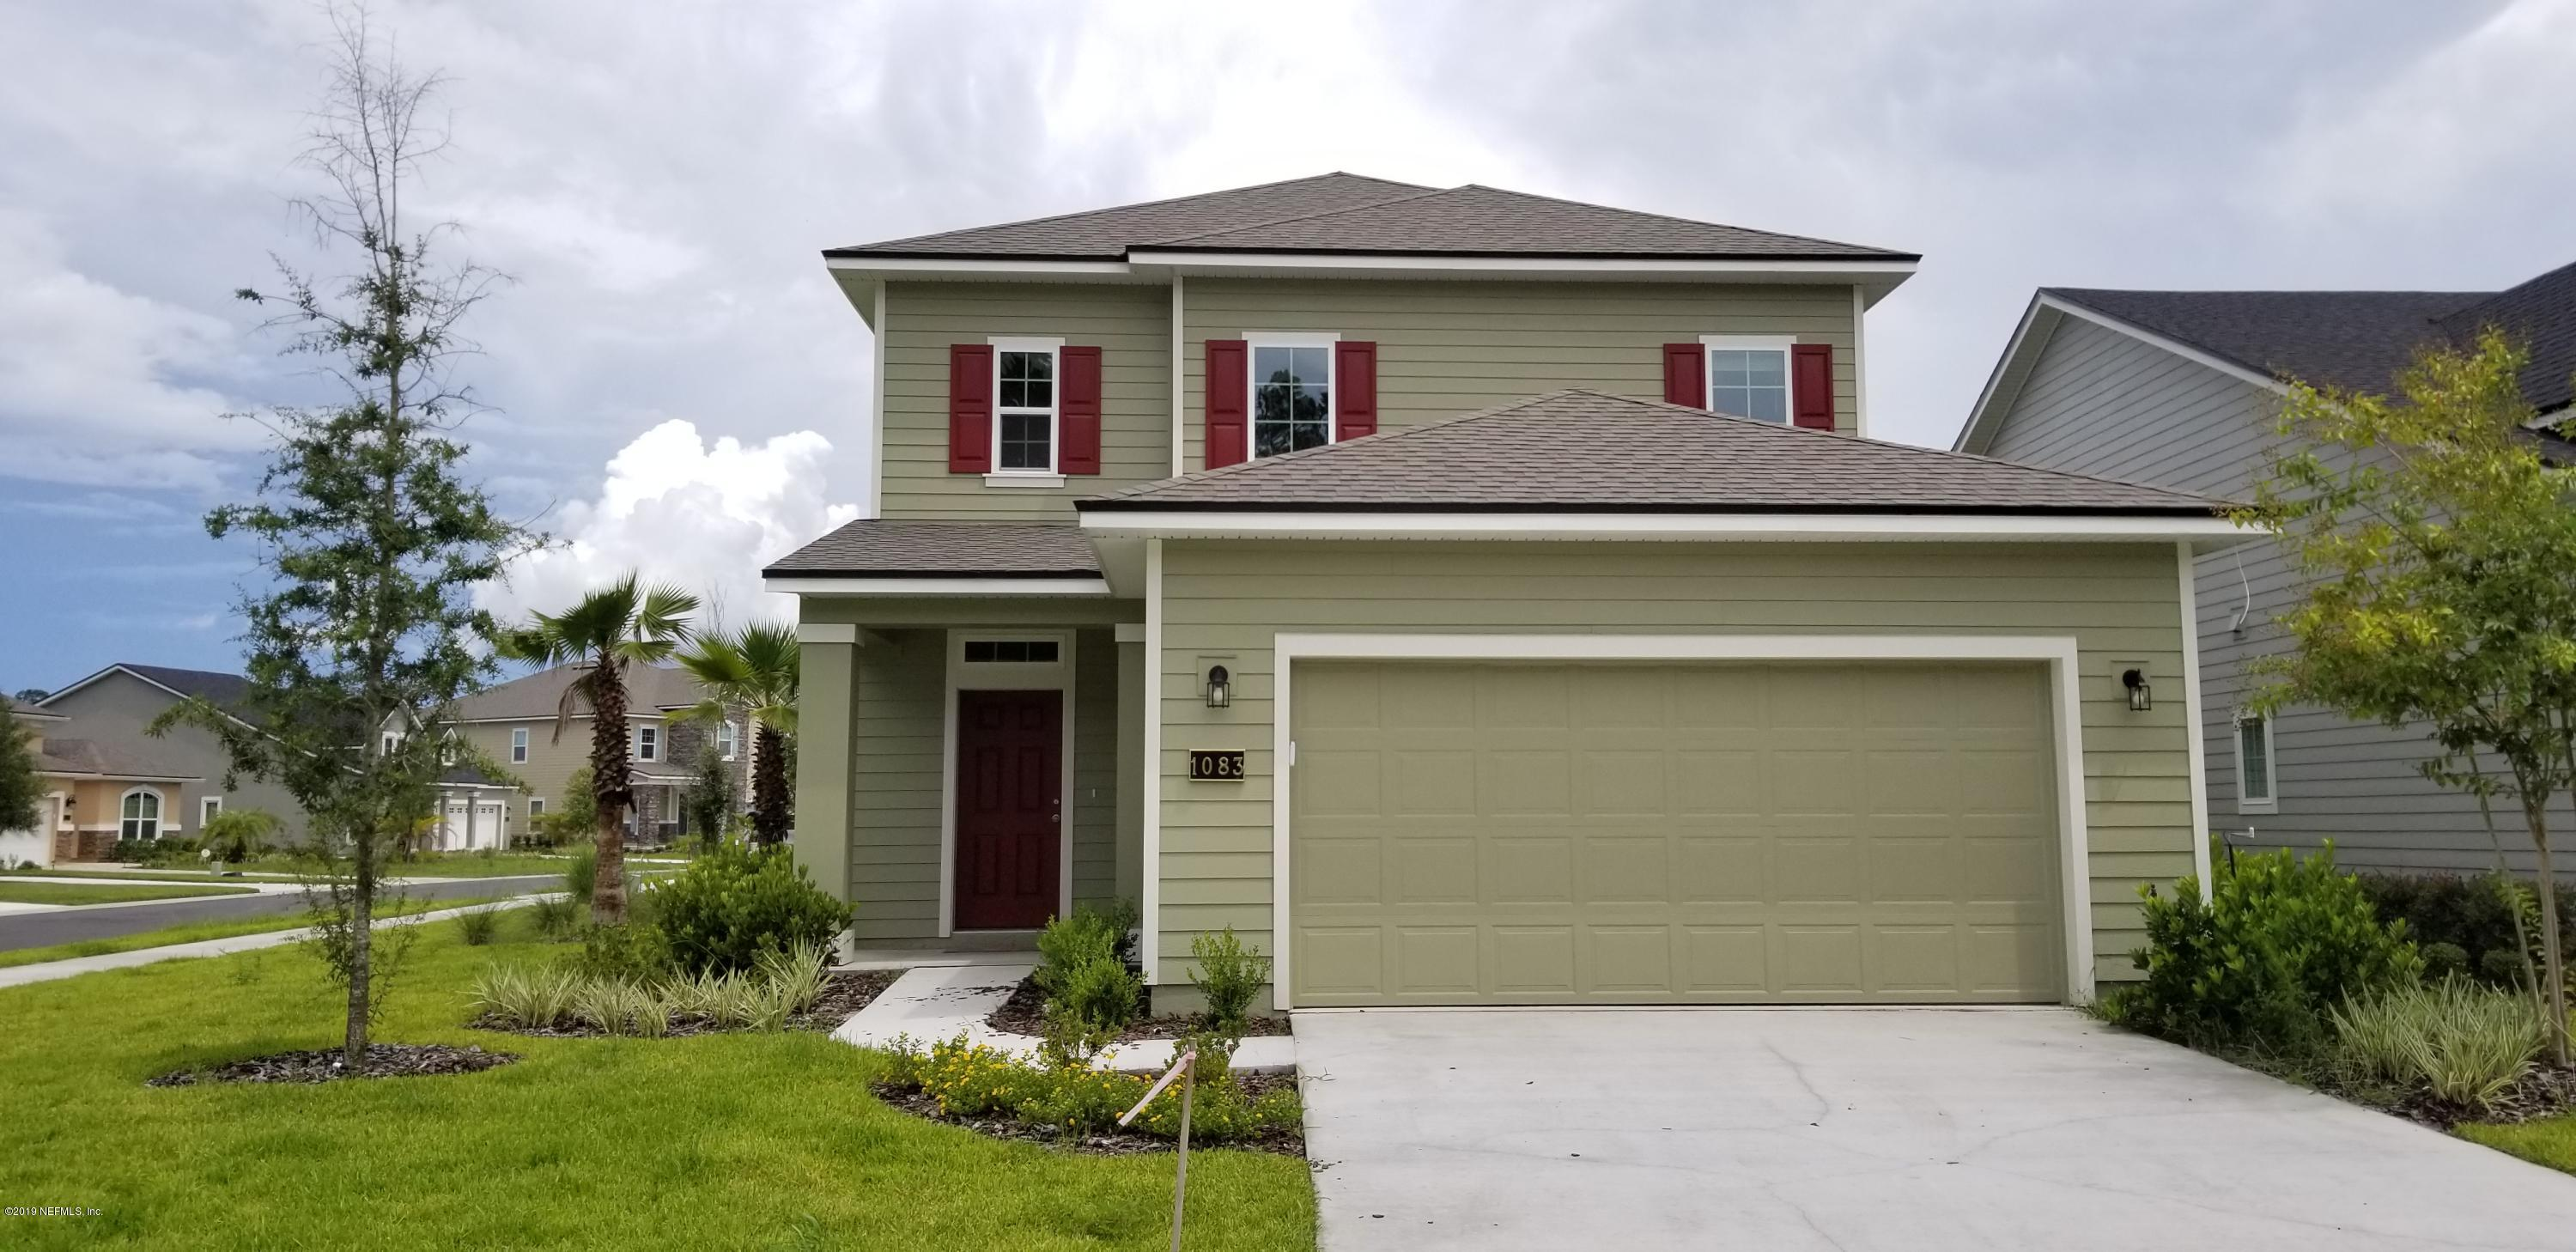 1083 LAUREL VALLEY, ORANGE PARK, FLORIDA 32065, 4 Bedrooms Bedrooms, ,2 BathroomsBathrooms,Residential,For sale,LAUREL VALLEY,990756